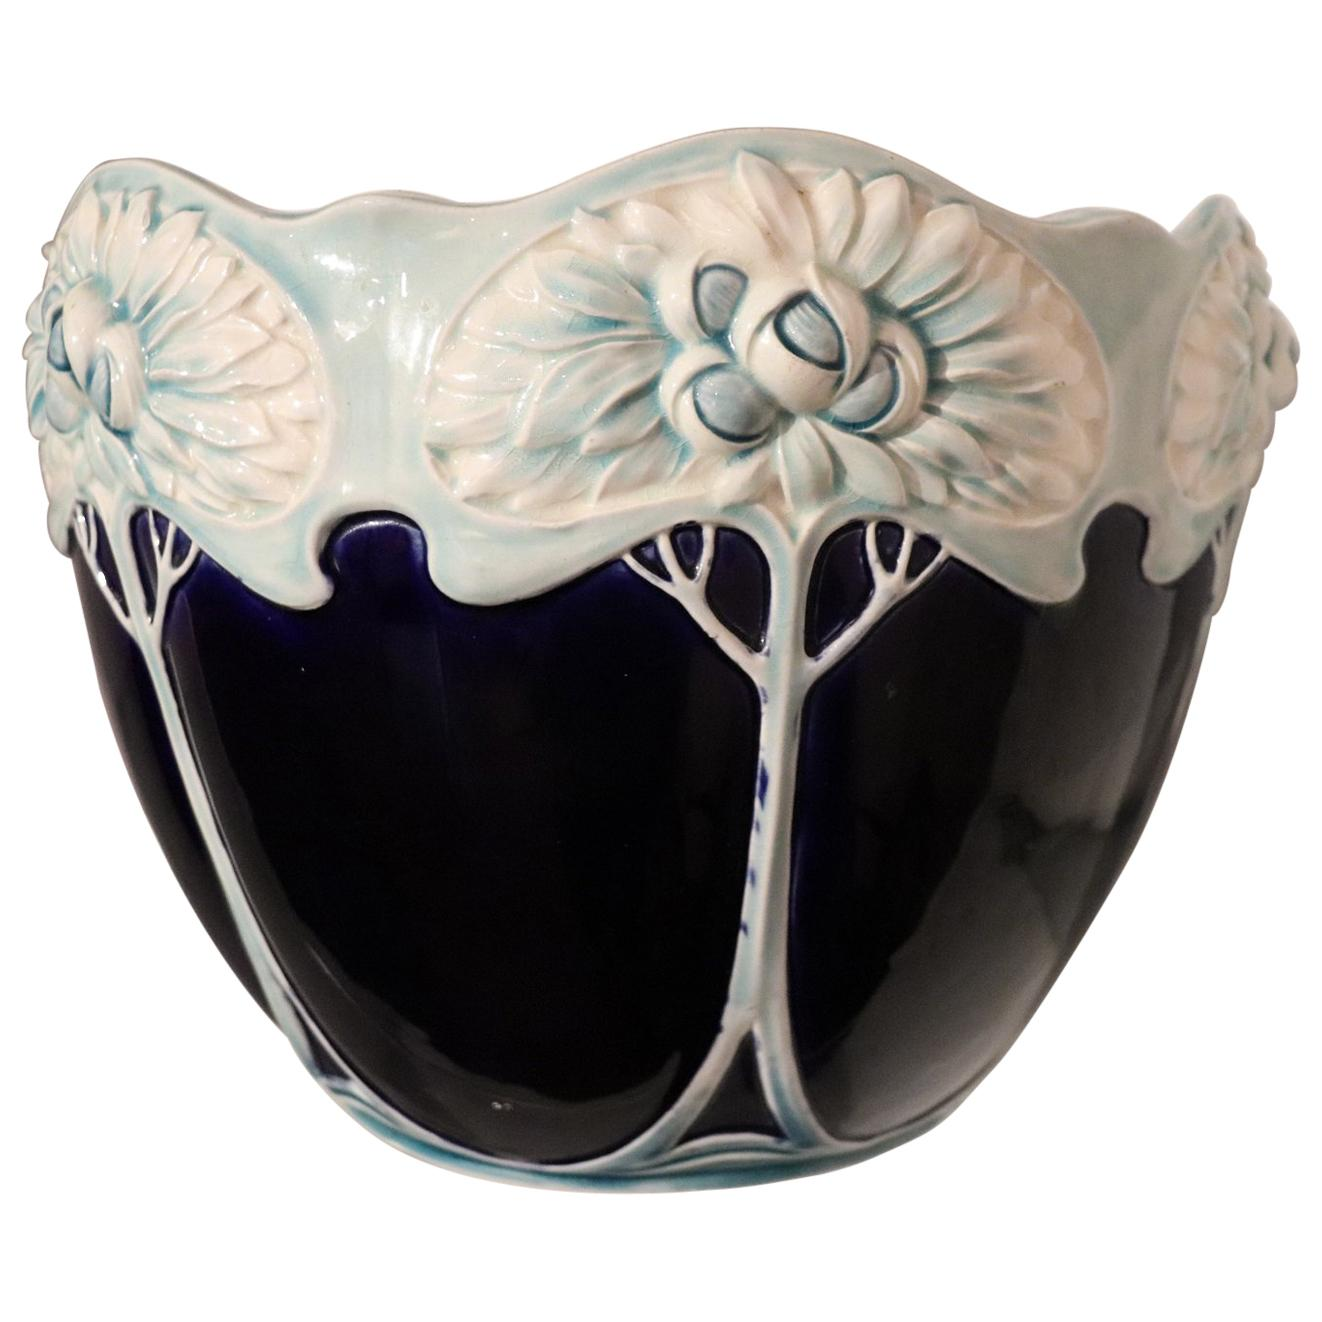 20th Century Art Nouveau Blue Ceramic Vase, 1920s